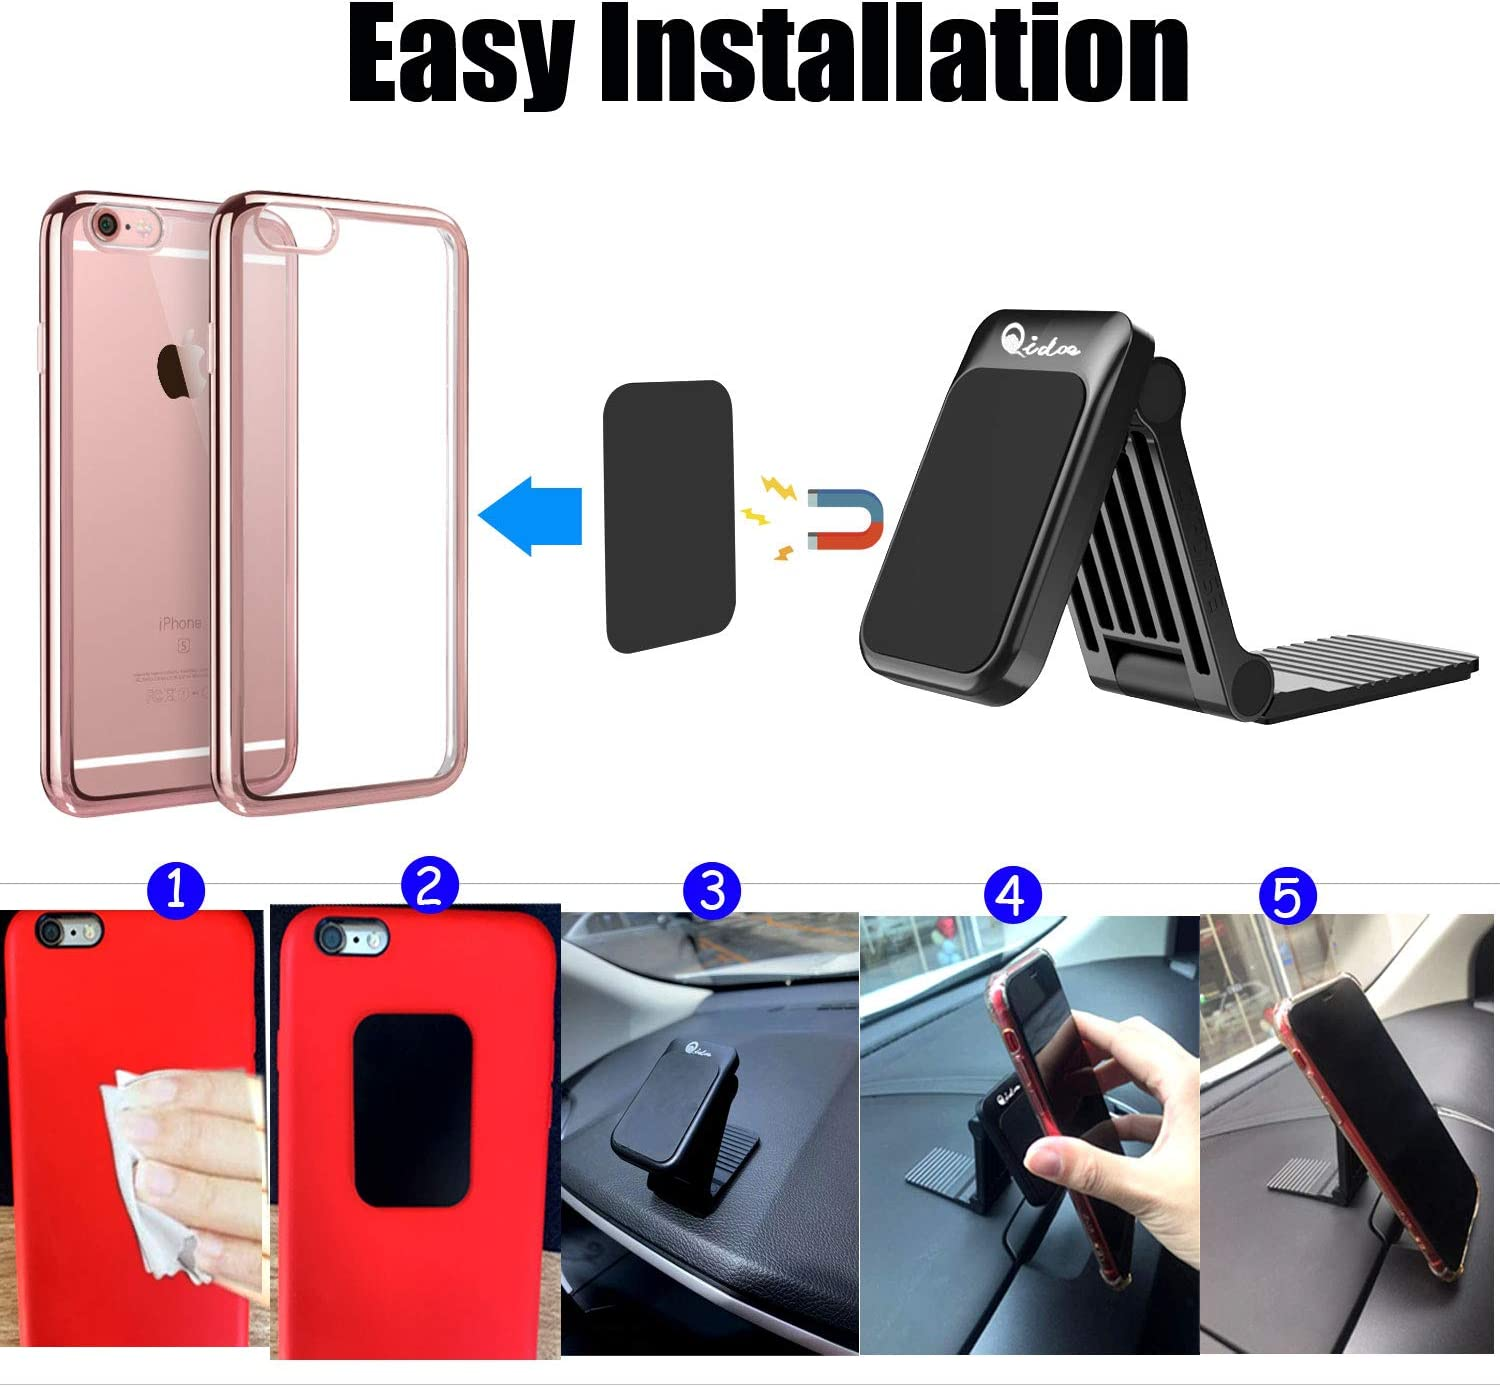 LG Motorola Nokia Samsung Galaxy Magnetic Phone Car Mount HTC ect Sony BlackBerry Qidoe Magnetic Car Phone Mount Holder Stick On Car with 3M Strong Adhesive Nice Car Kit for iPhone